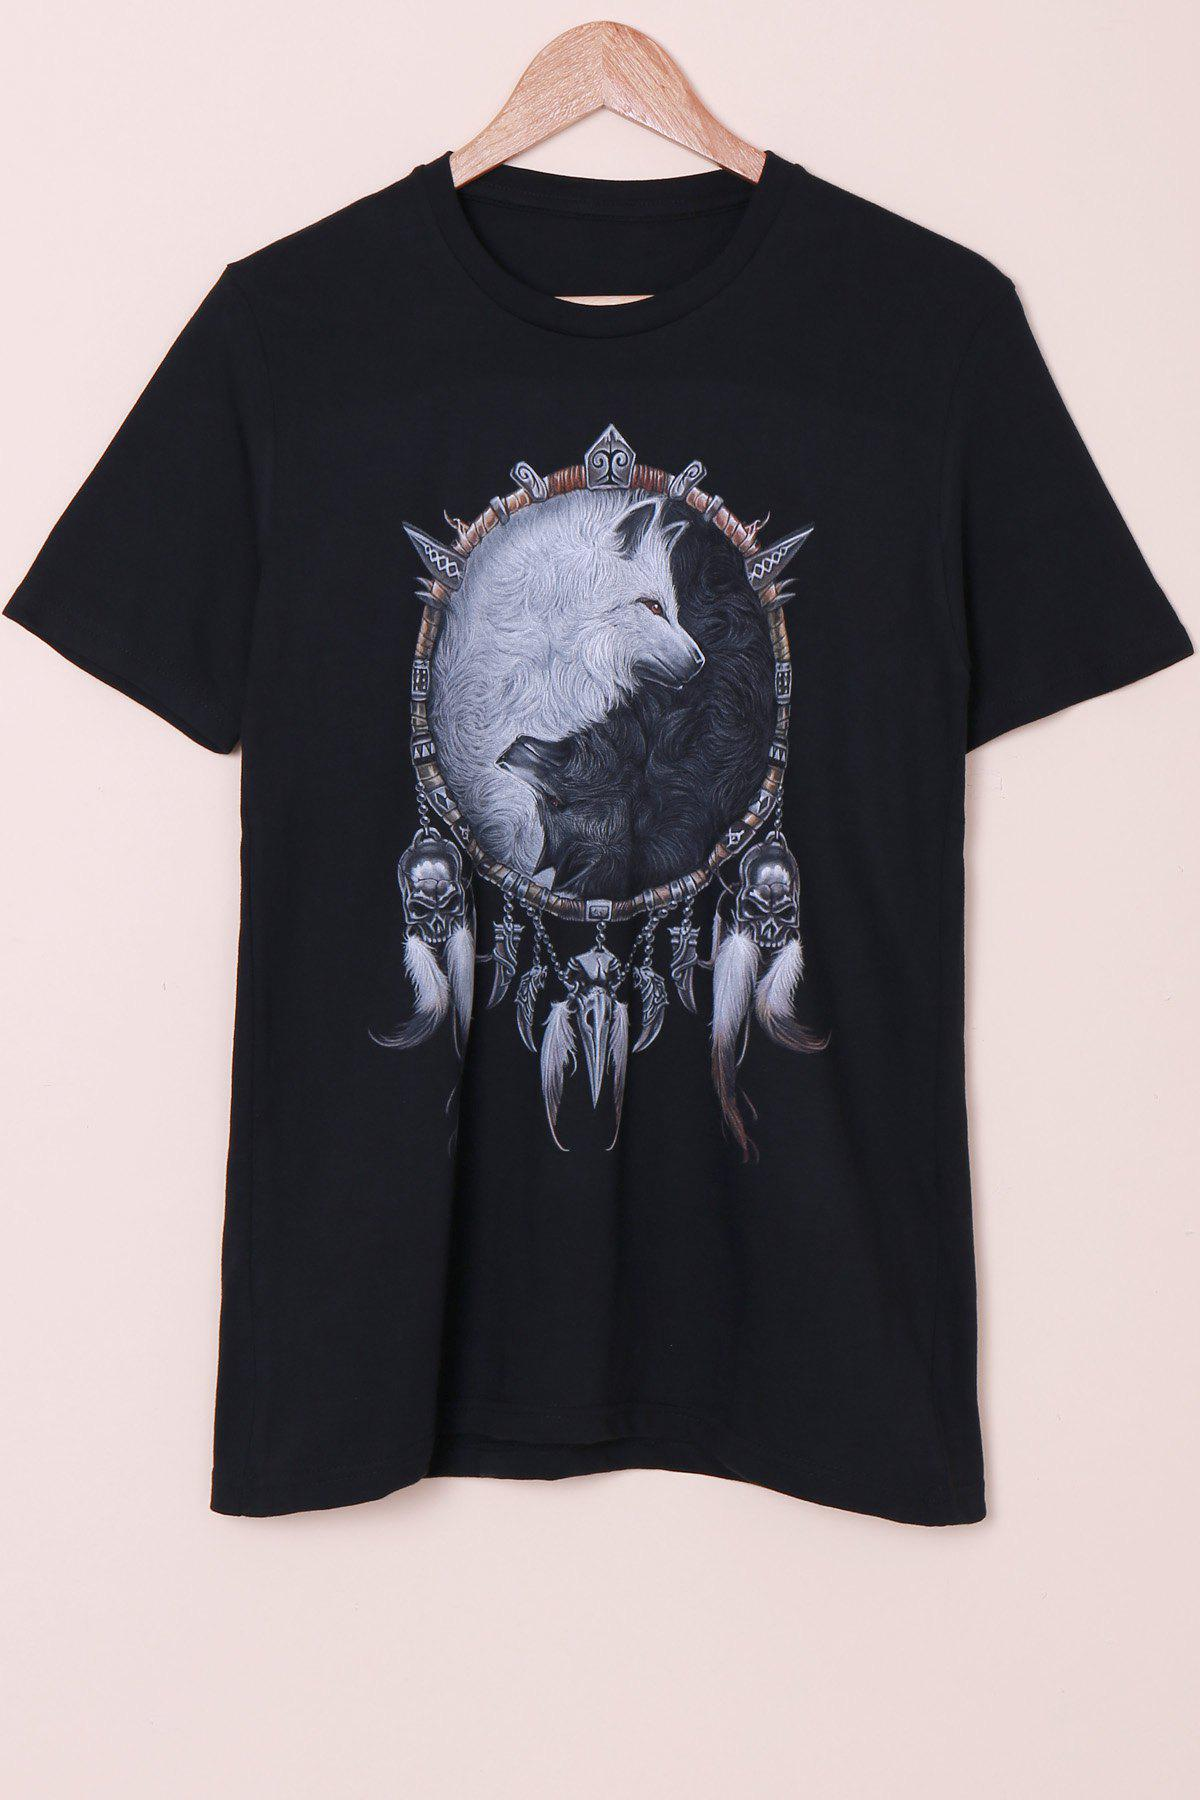 Special Fox Print Round Neck Short Sleeves Men's 3D T-Shirt